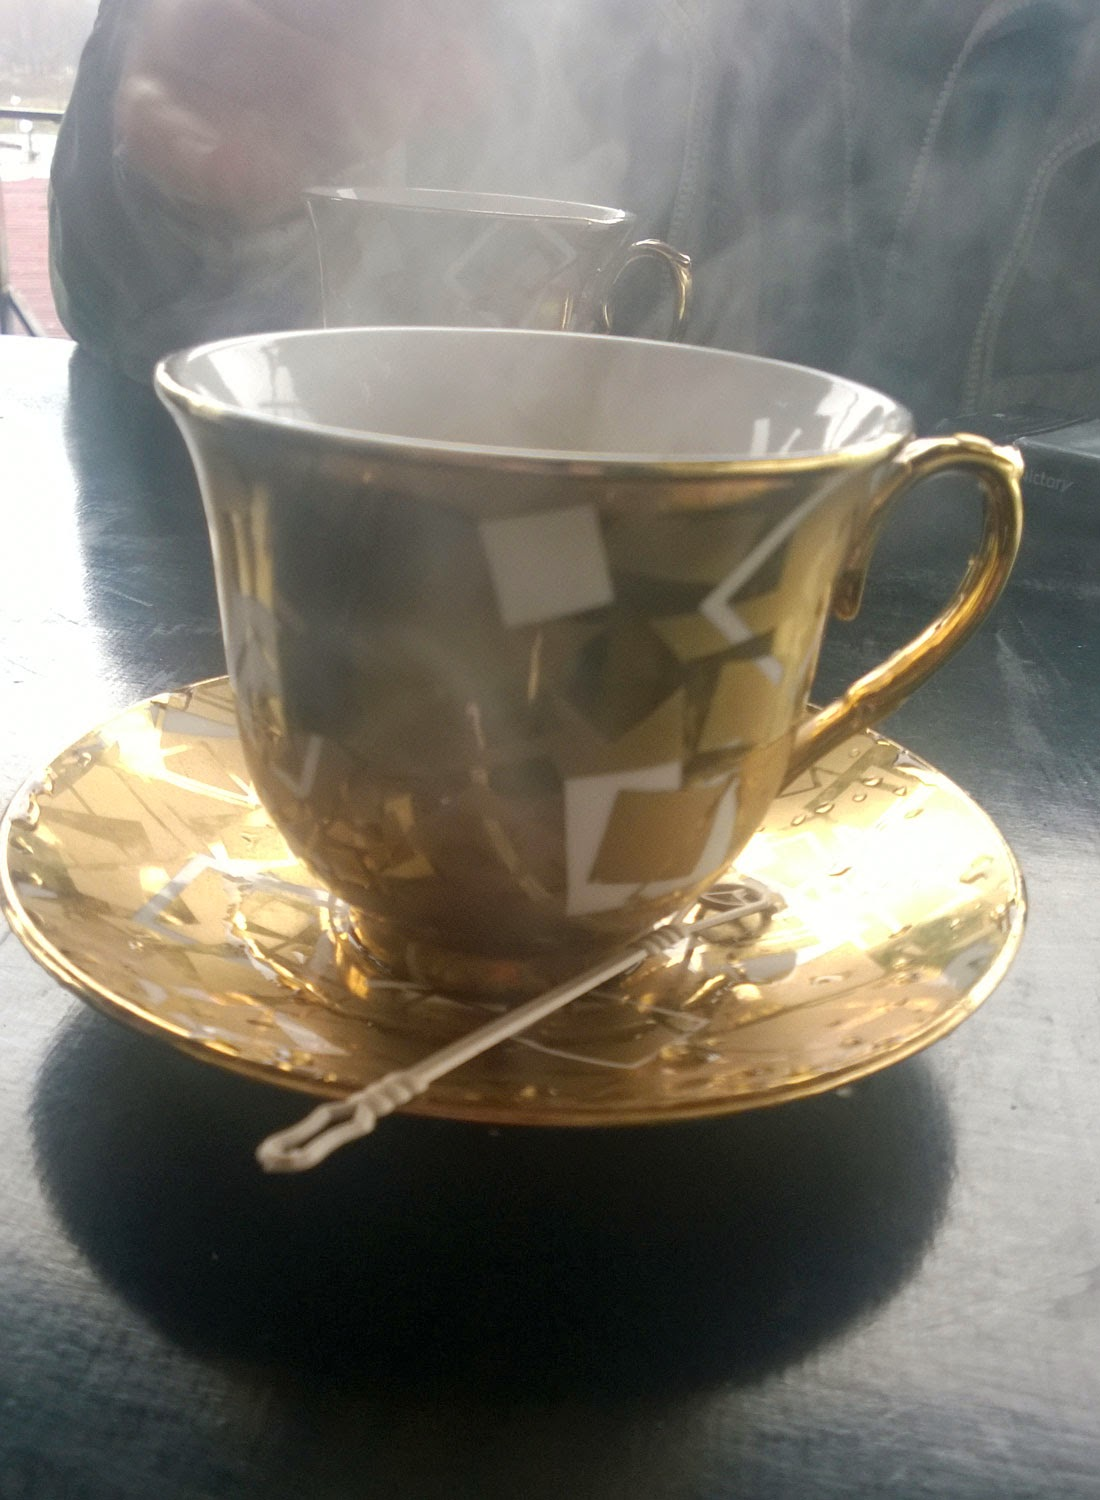 Coffee served in a golden cup